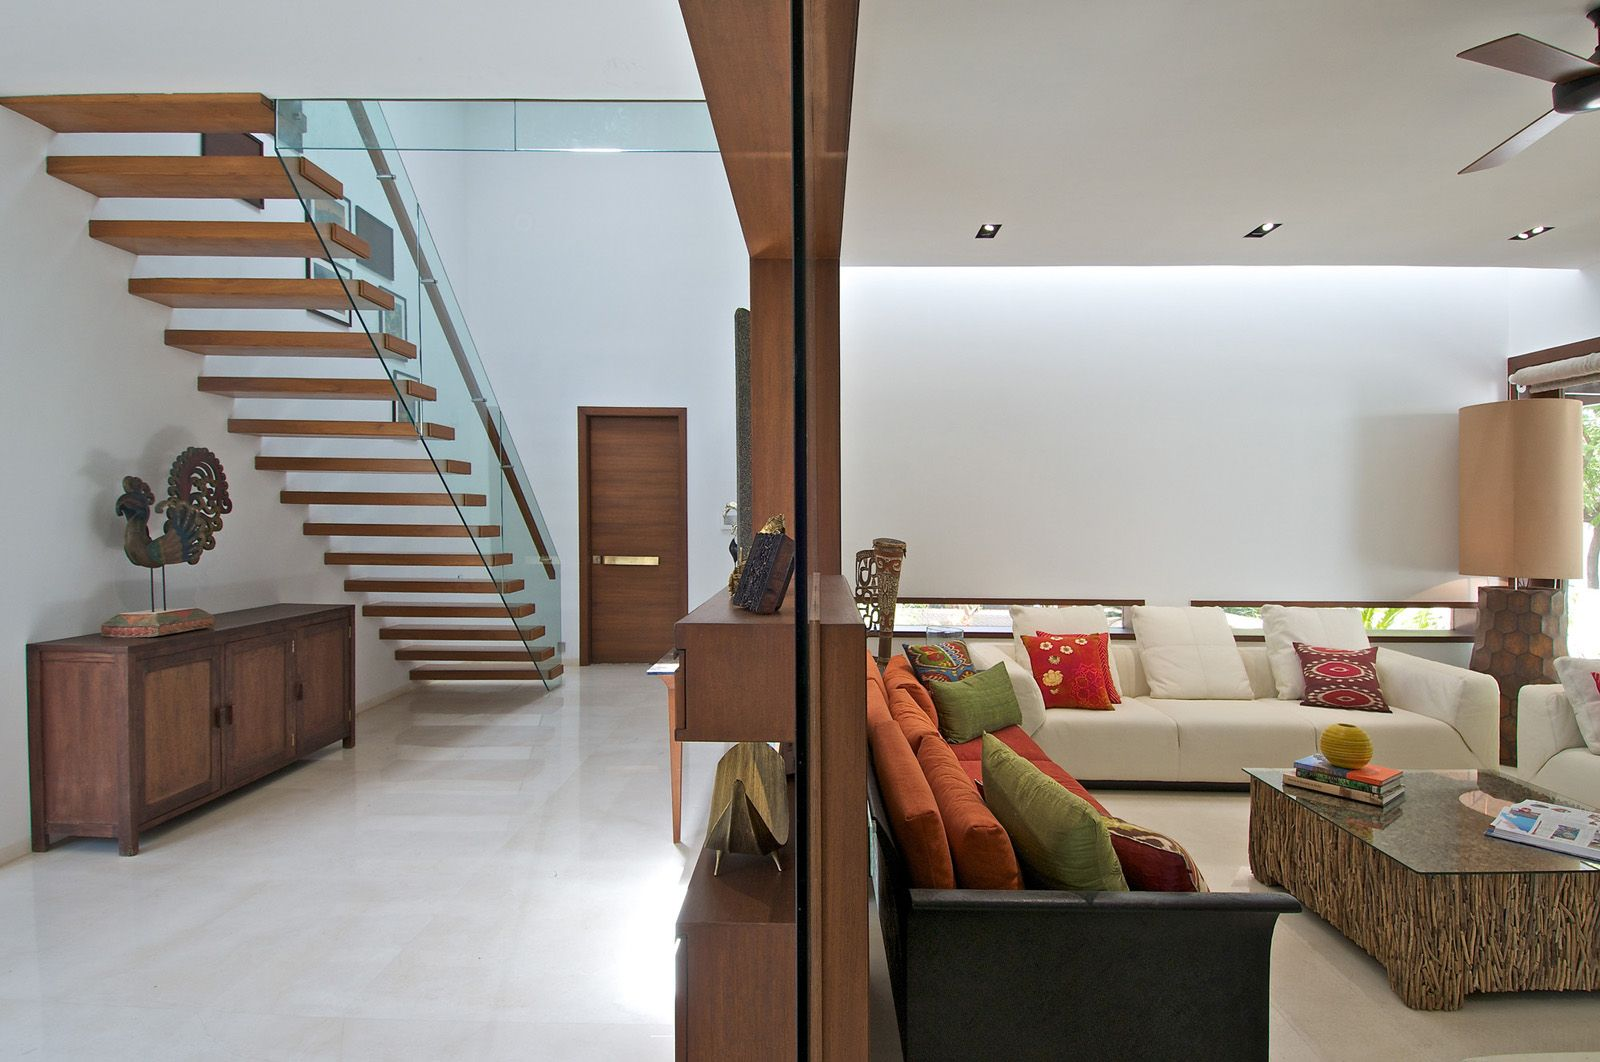 Awesome Timeless Contemporary House In India With Courtyard Zen Garden |  IDesignArch | Interior Design, Architecture